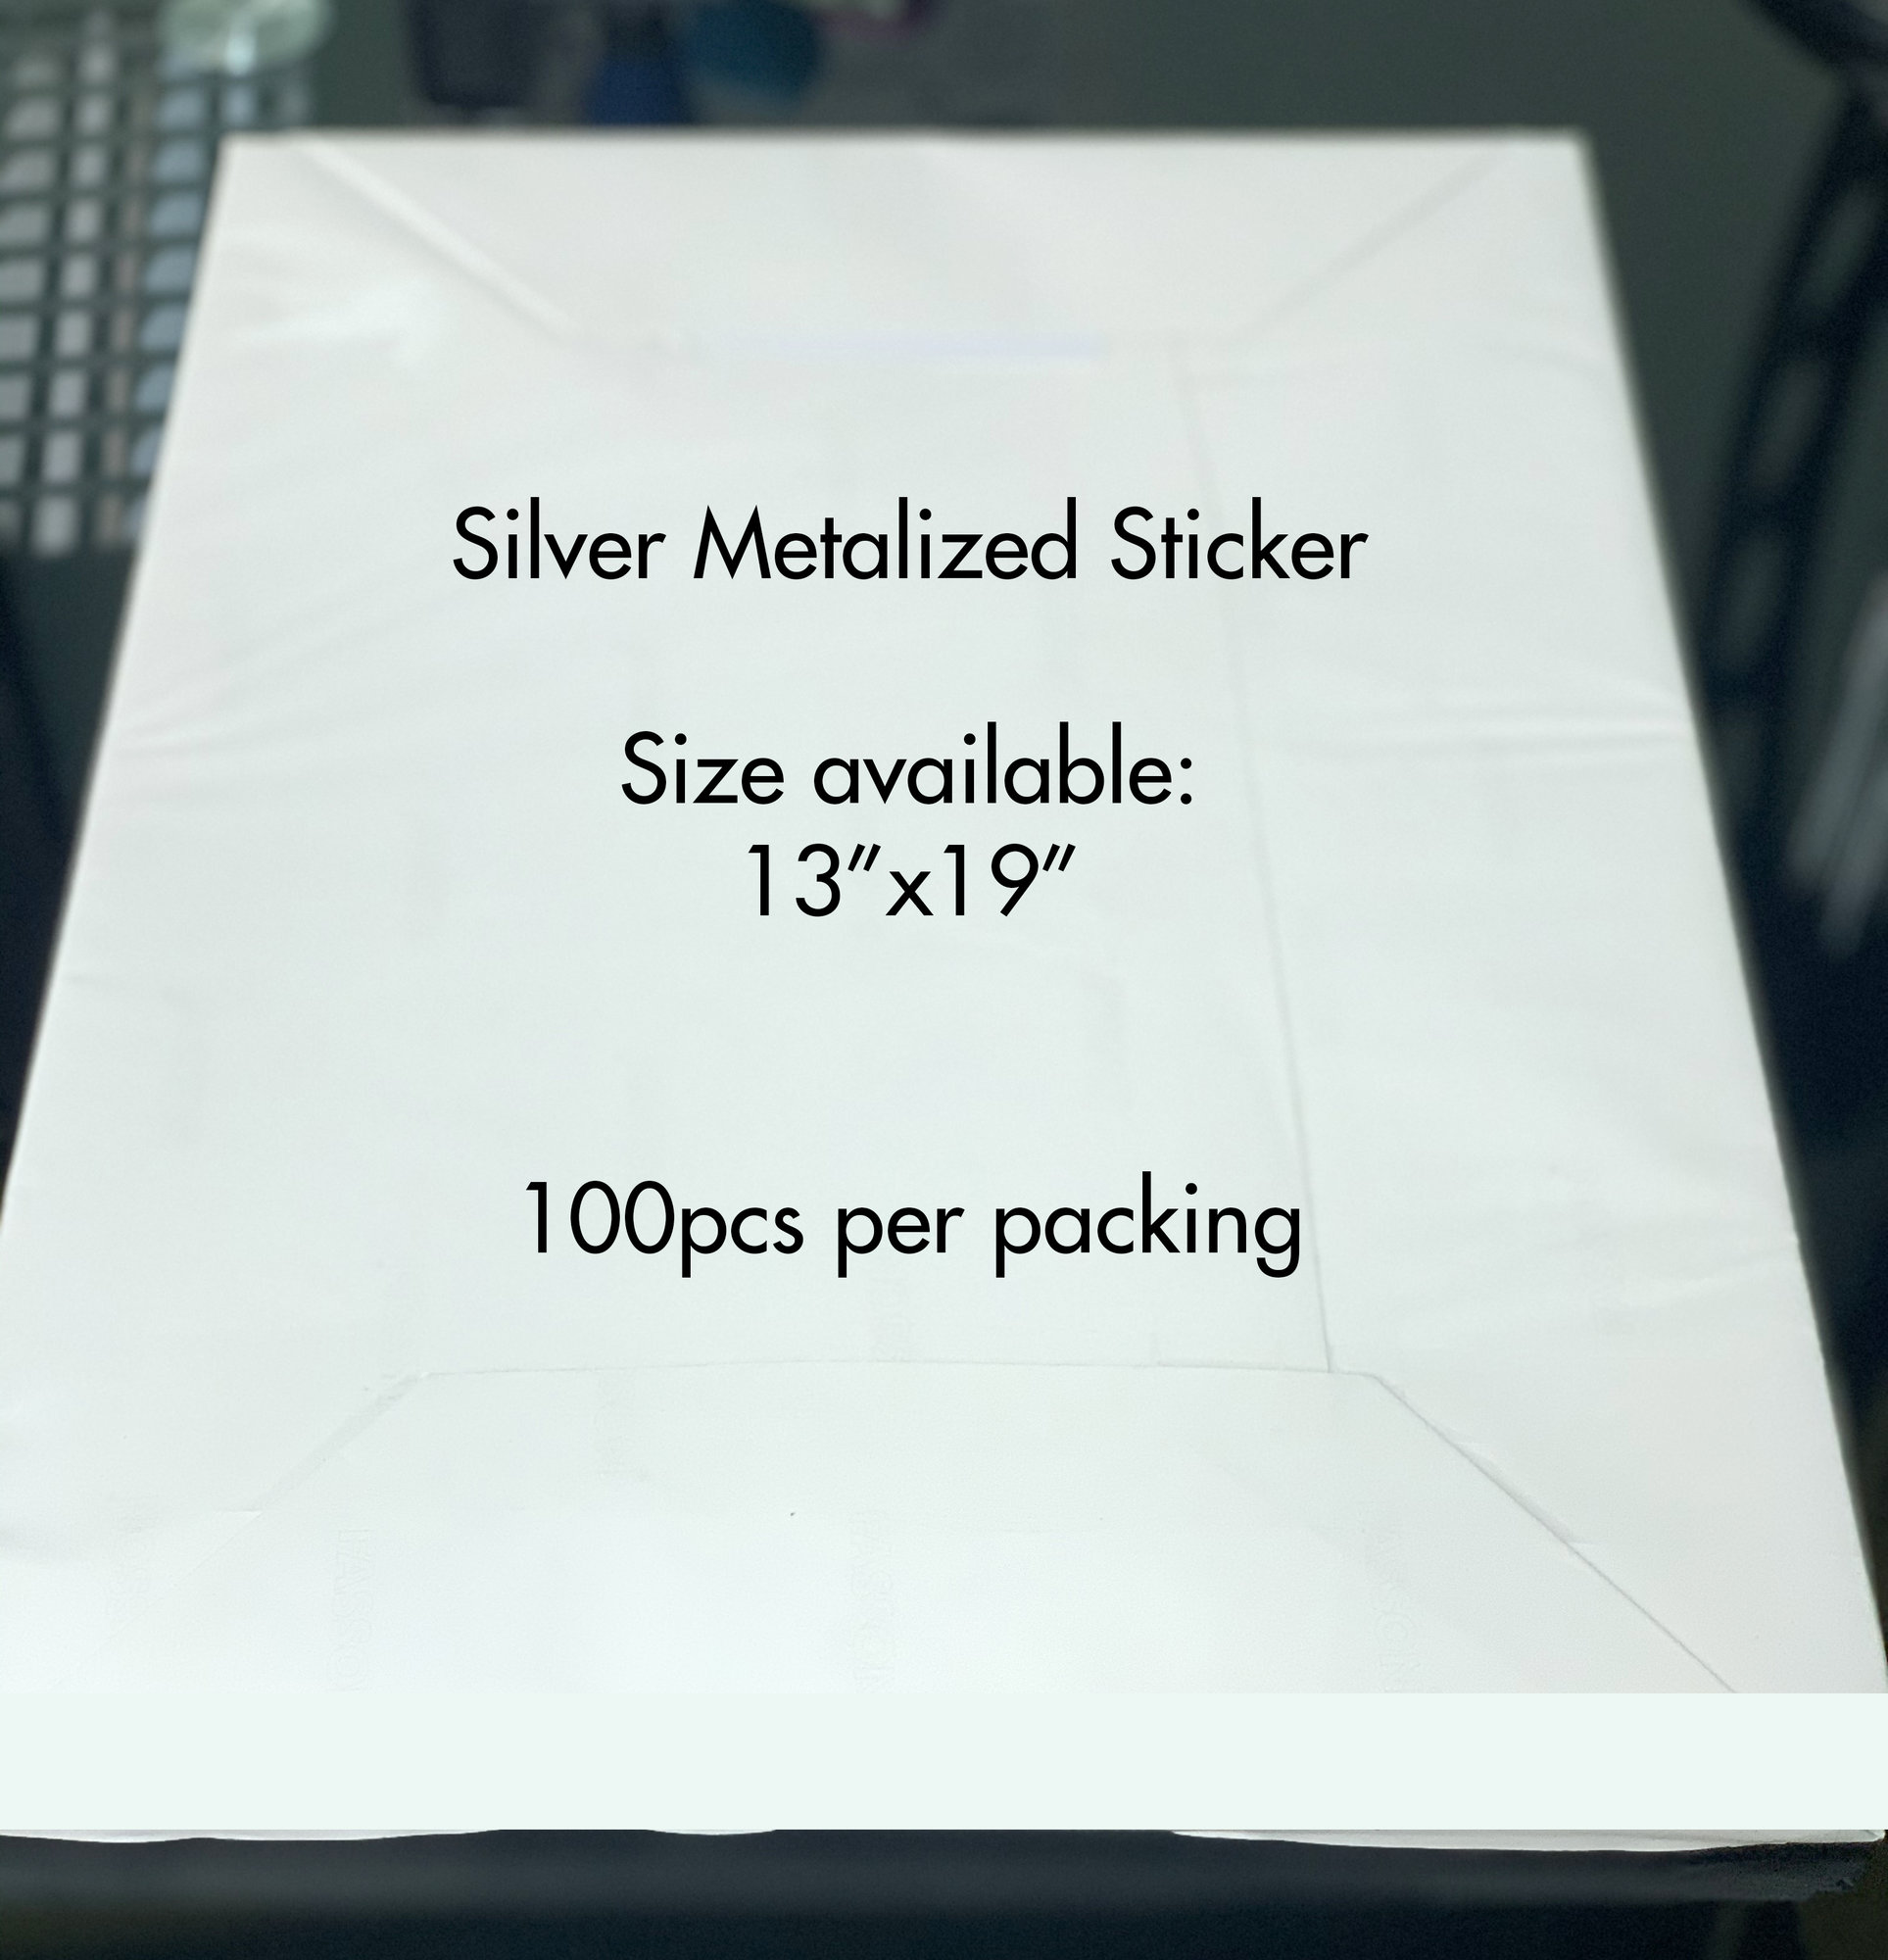 Silver Metalic Sticker